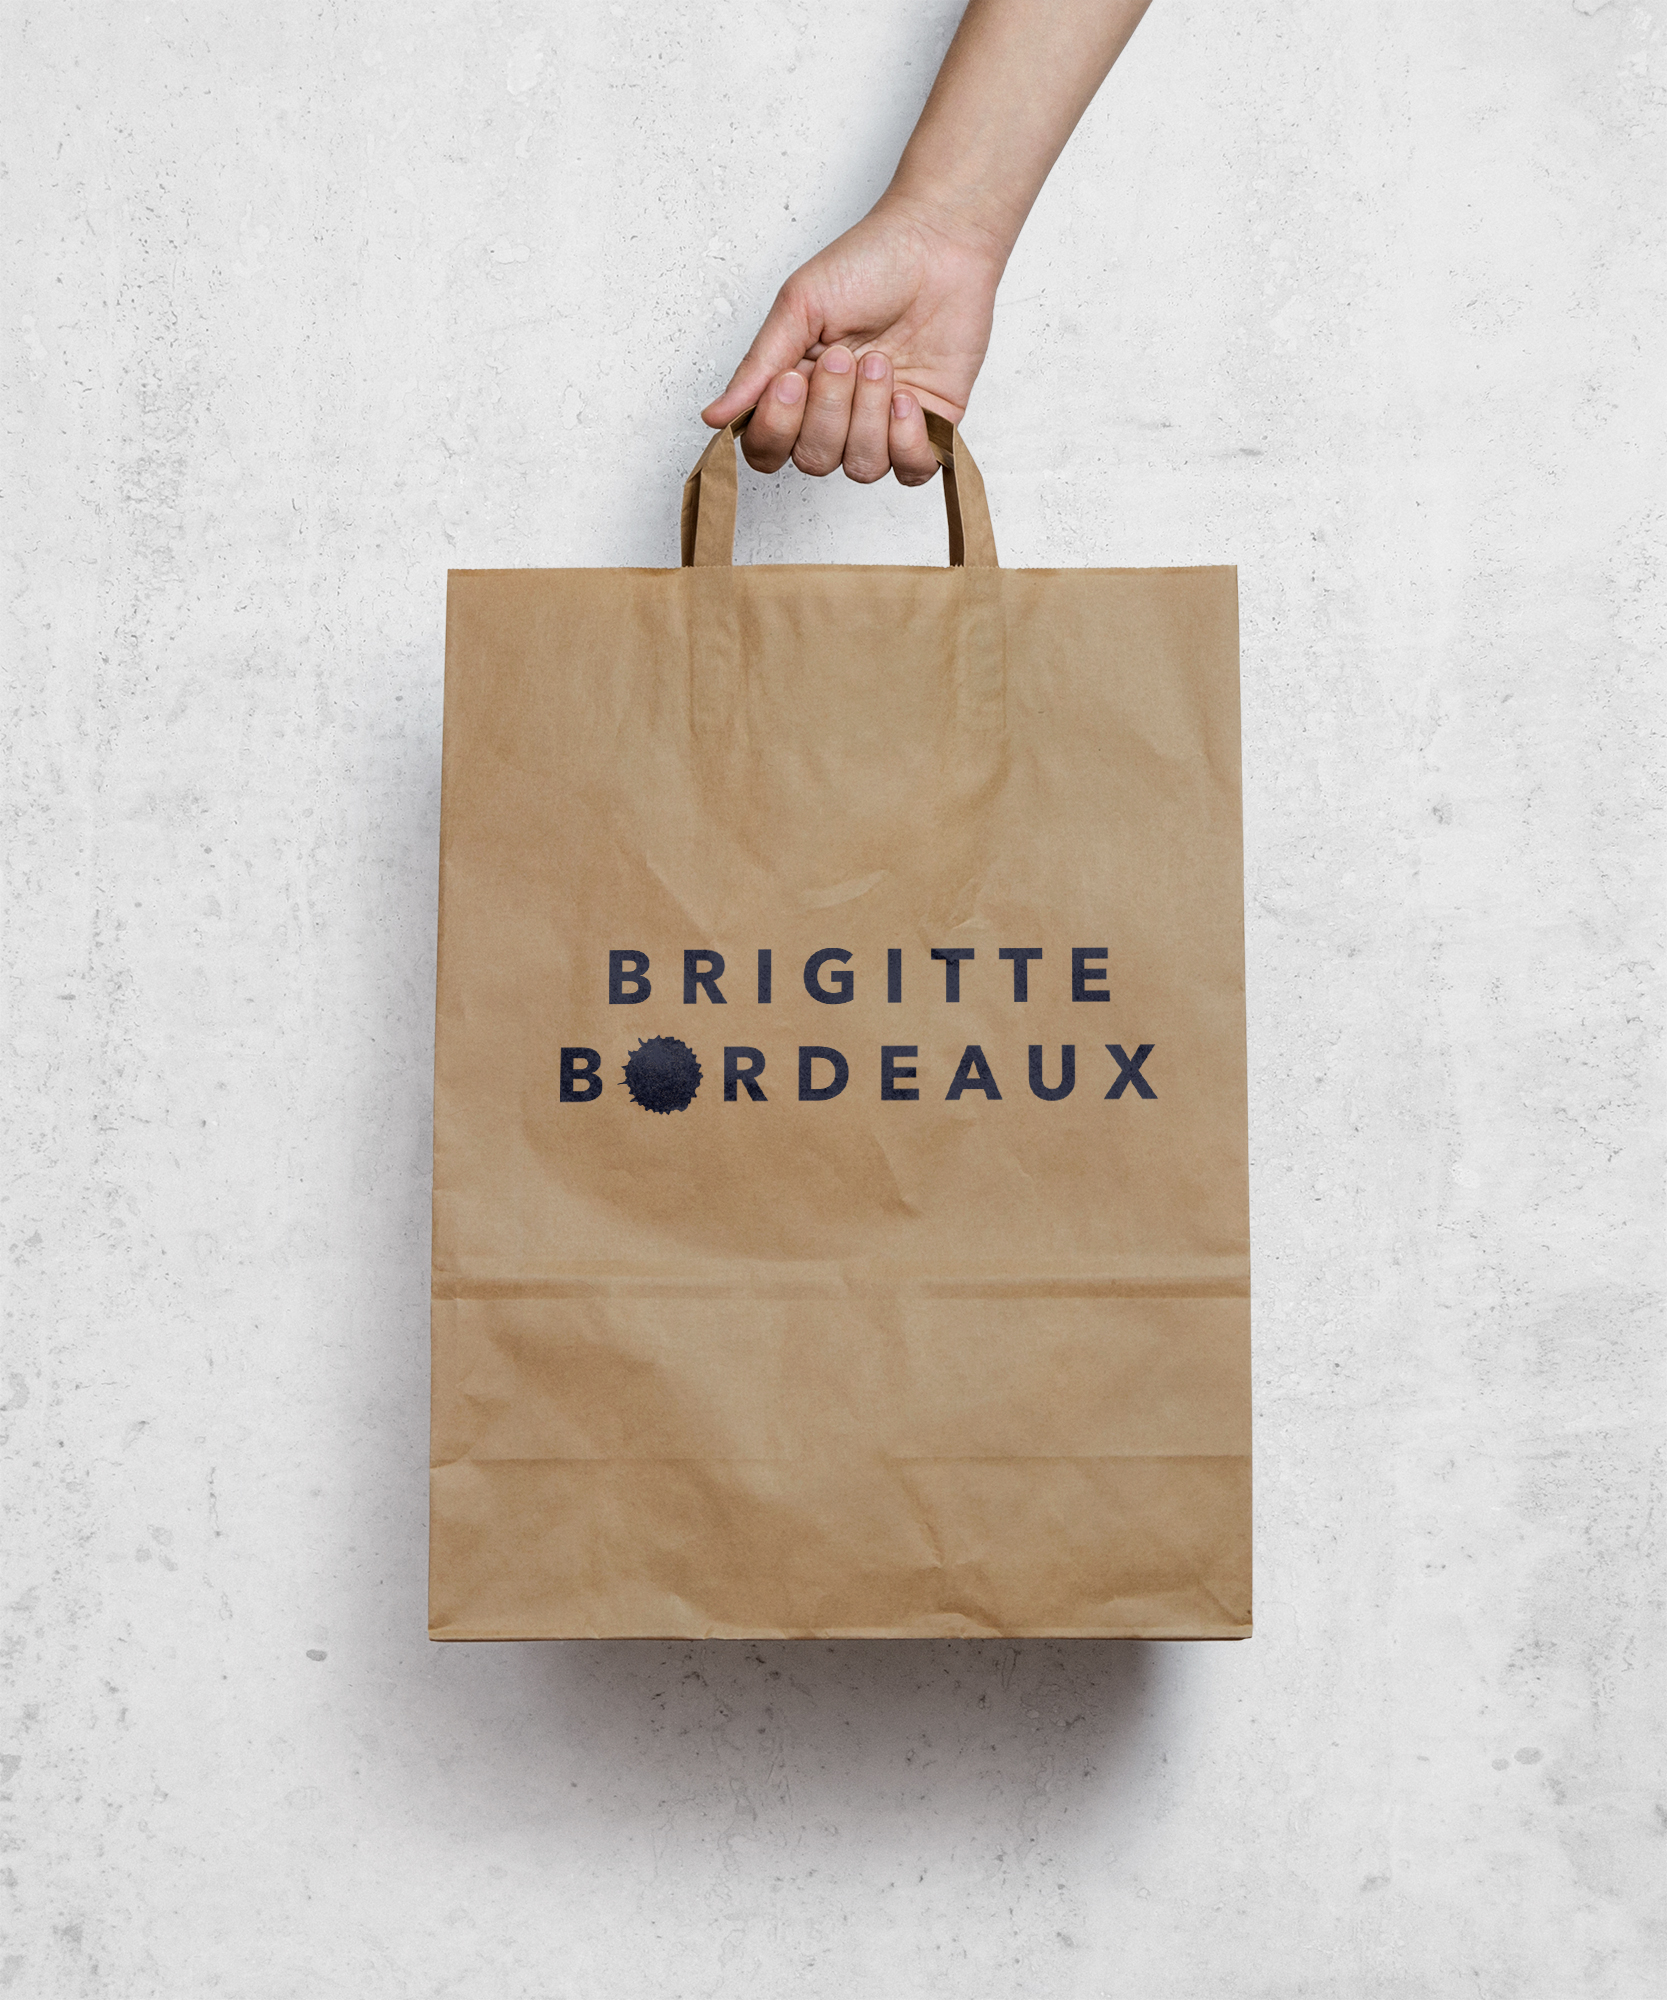 brigitte-bordeaux-paper bag.jpg